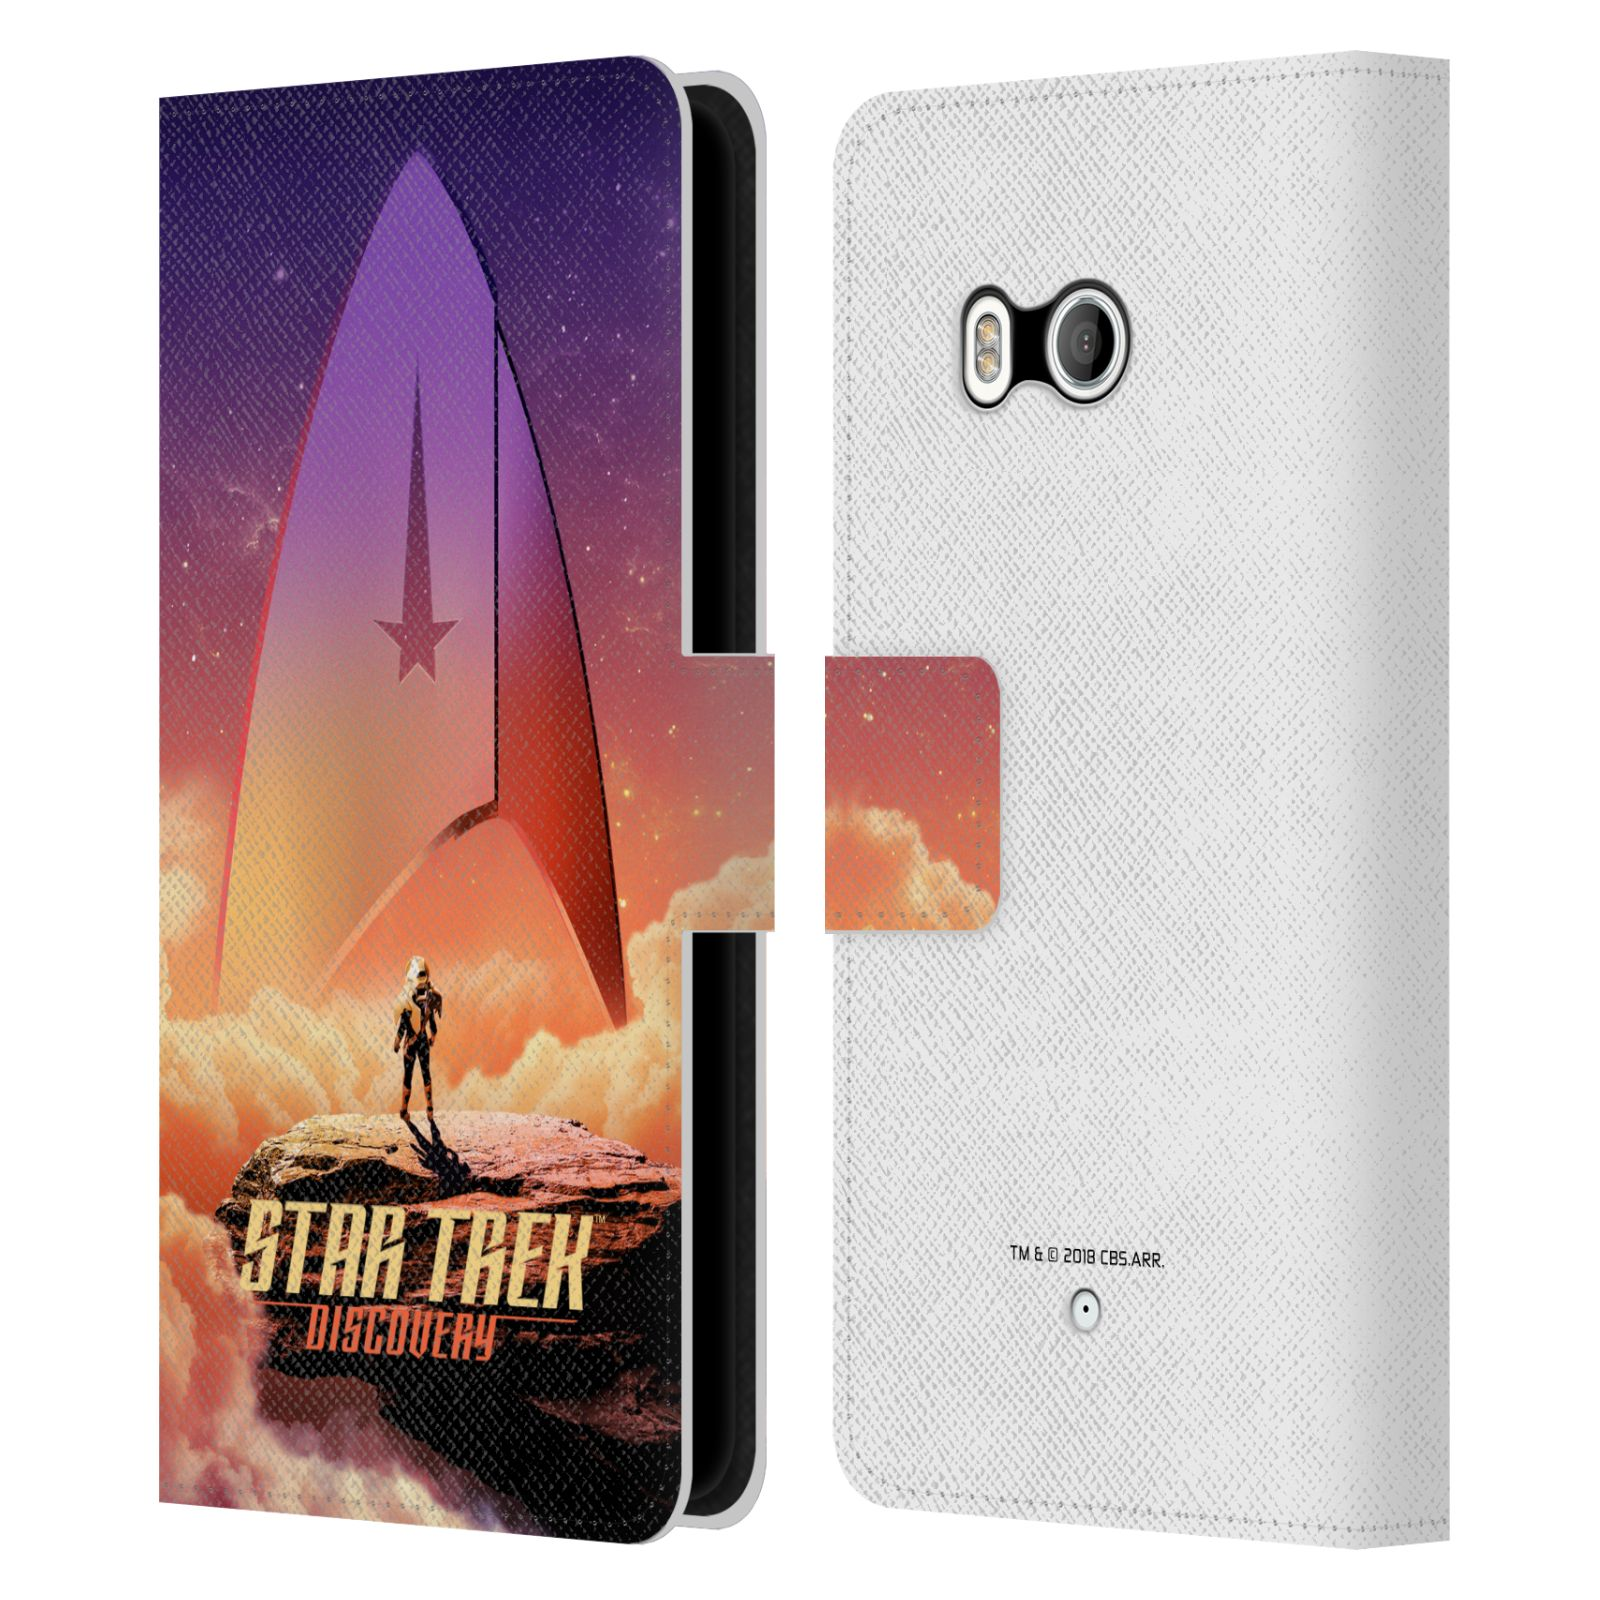 OFFICIAL-STAR-TREK-DISCOVERY-POSTERS-LEATHER-BOOK-WALLET-CASE-FOR-HTC-PHONES-1